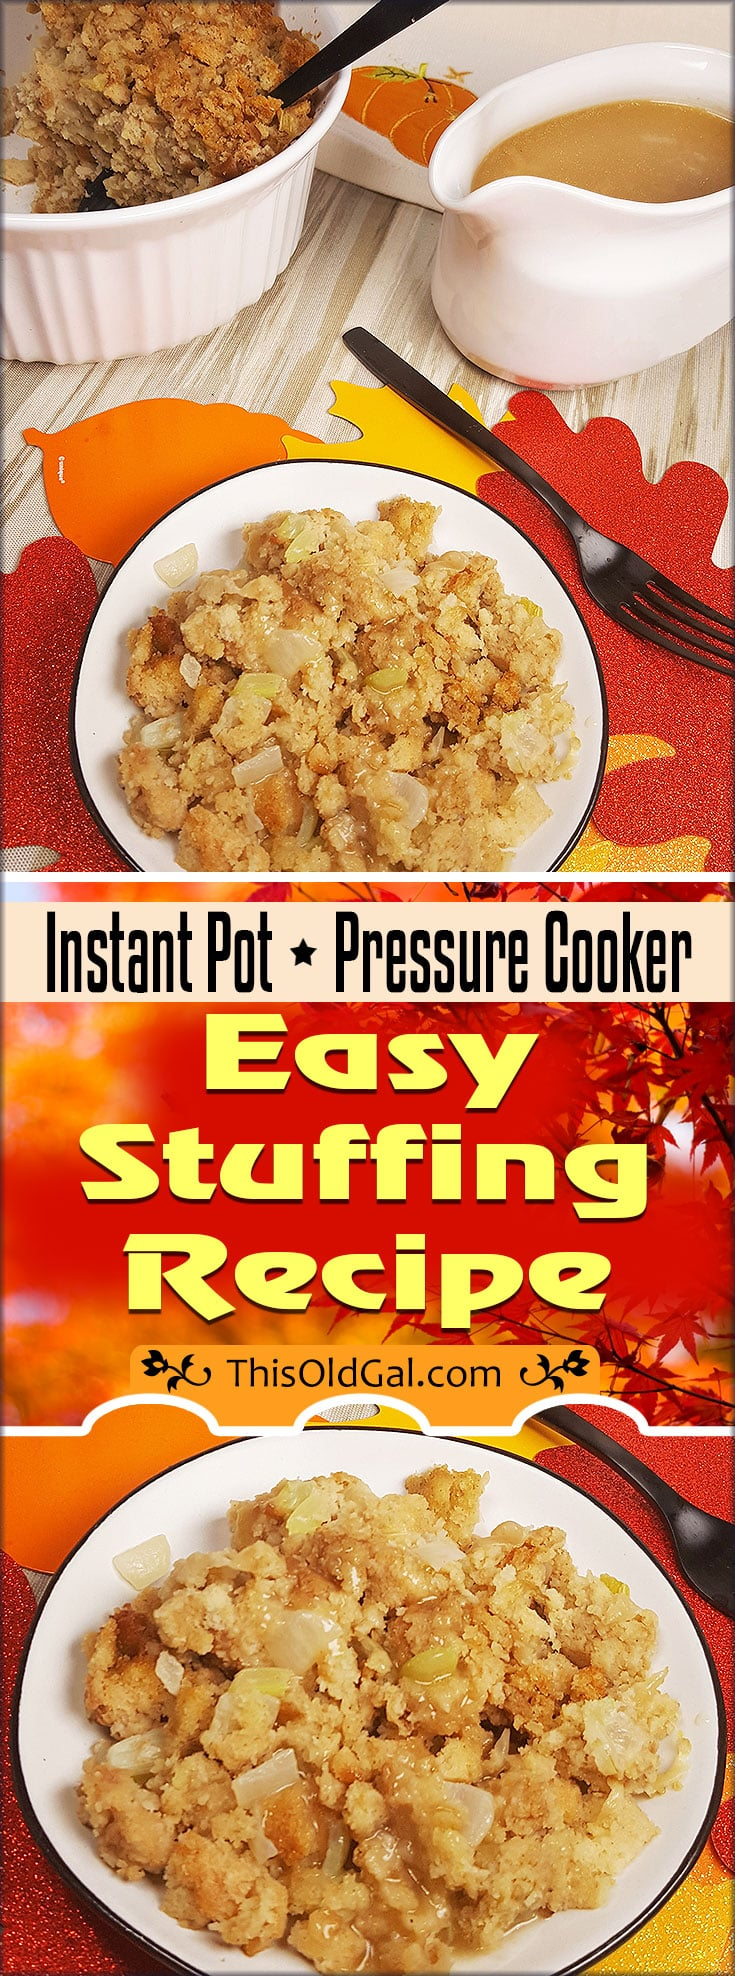 Instant Pot Pressure Cooker Stuffing Recipe